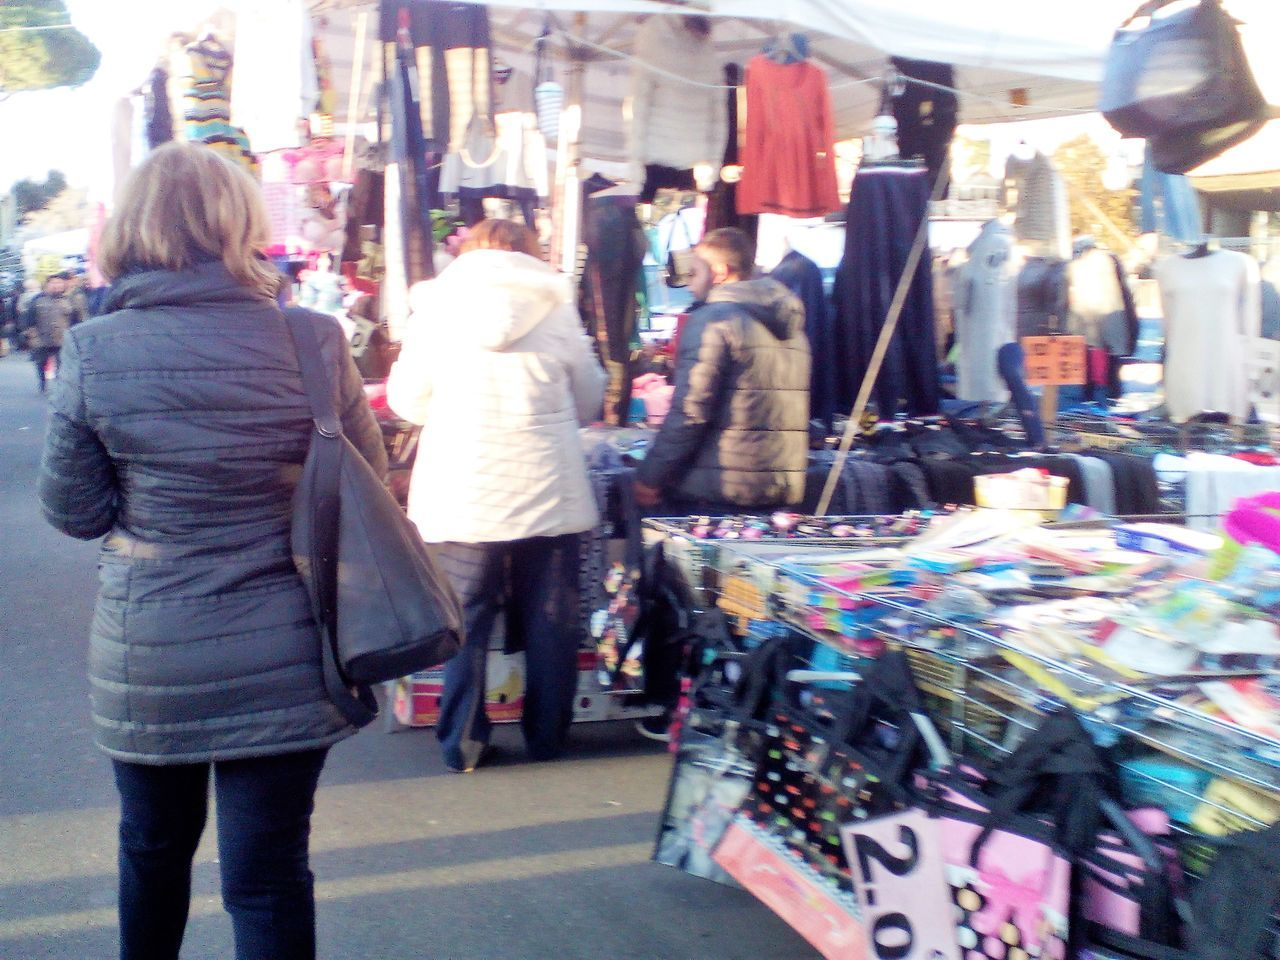 retail, rear view, store, incidental people, consumerism, market, choice, for sale, market stall, customer, real people, walking, women, city, casual clothing, outdoors, day, lifestyles, warm clothing, people